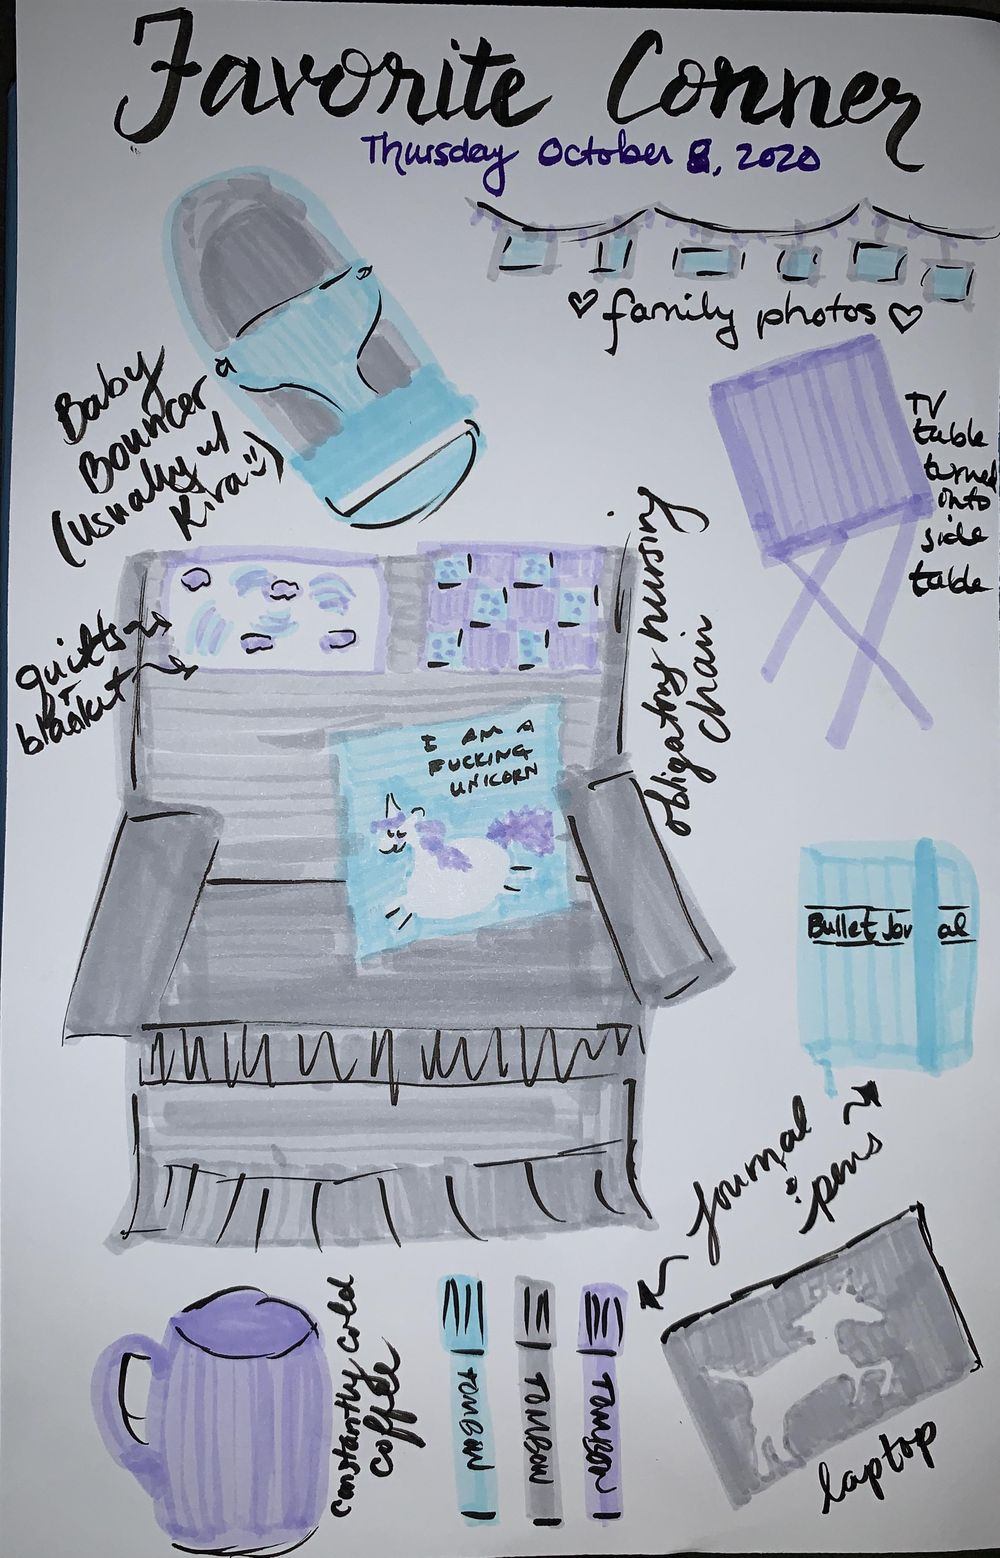 Illustrated Journaling journey - image 4 - student project